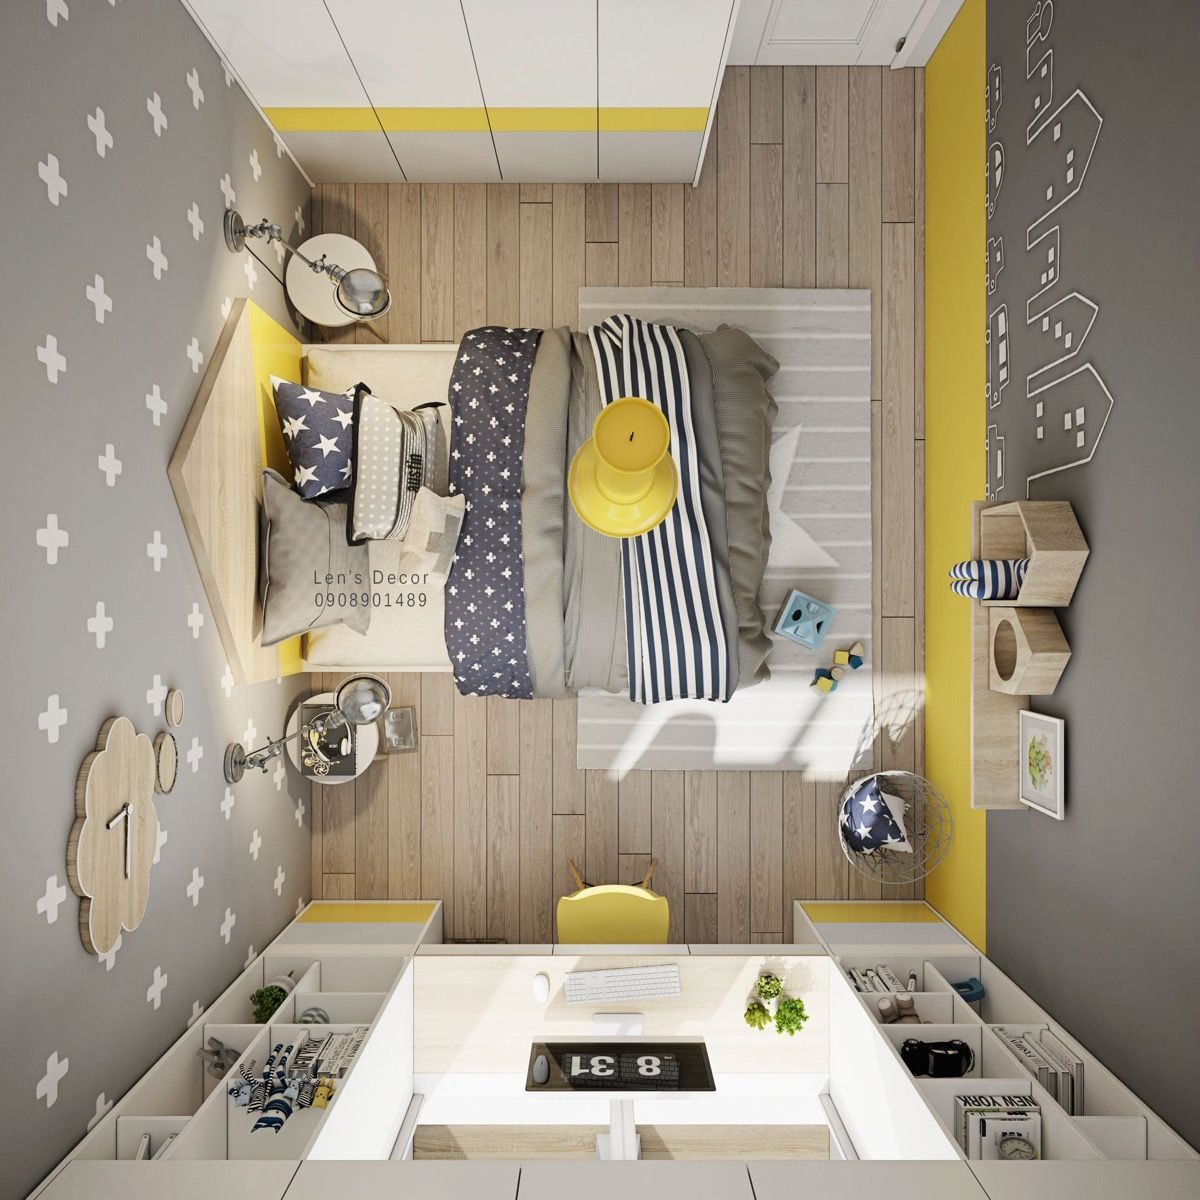 Seeking Bed Room Layout Ideas For Children Below Is A Collection Of Suggestions For Kids S Bed Rooms That Are Fi Yellow Kids Rooms Kid Room Decor Bright Decor